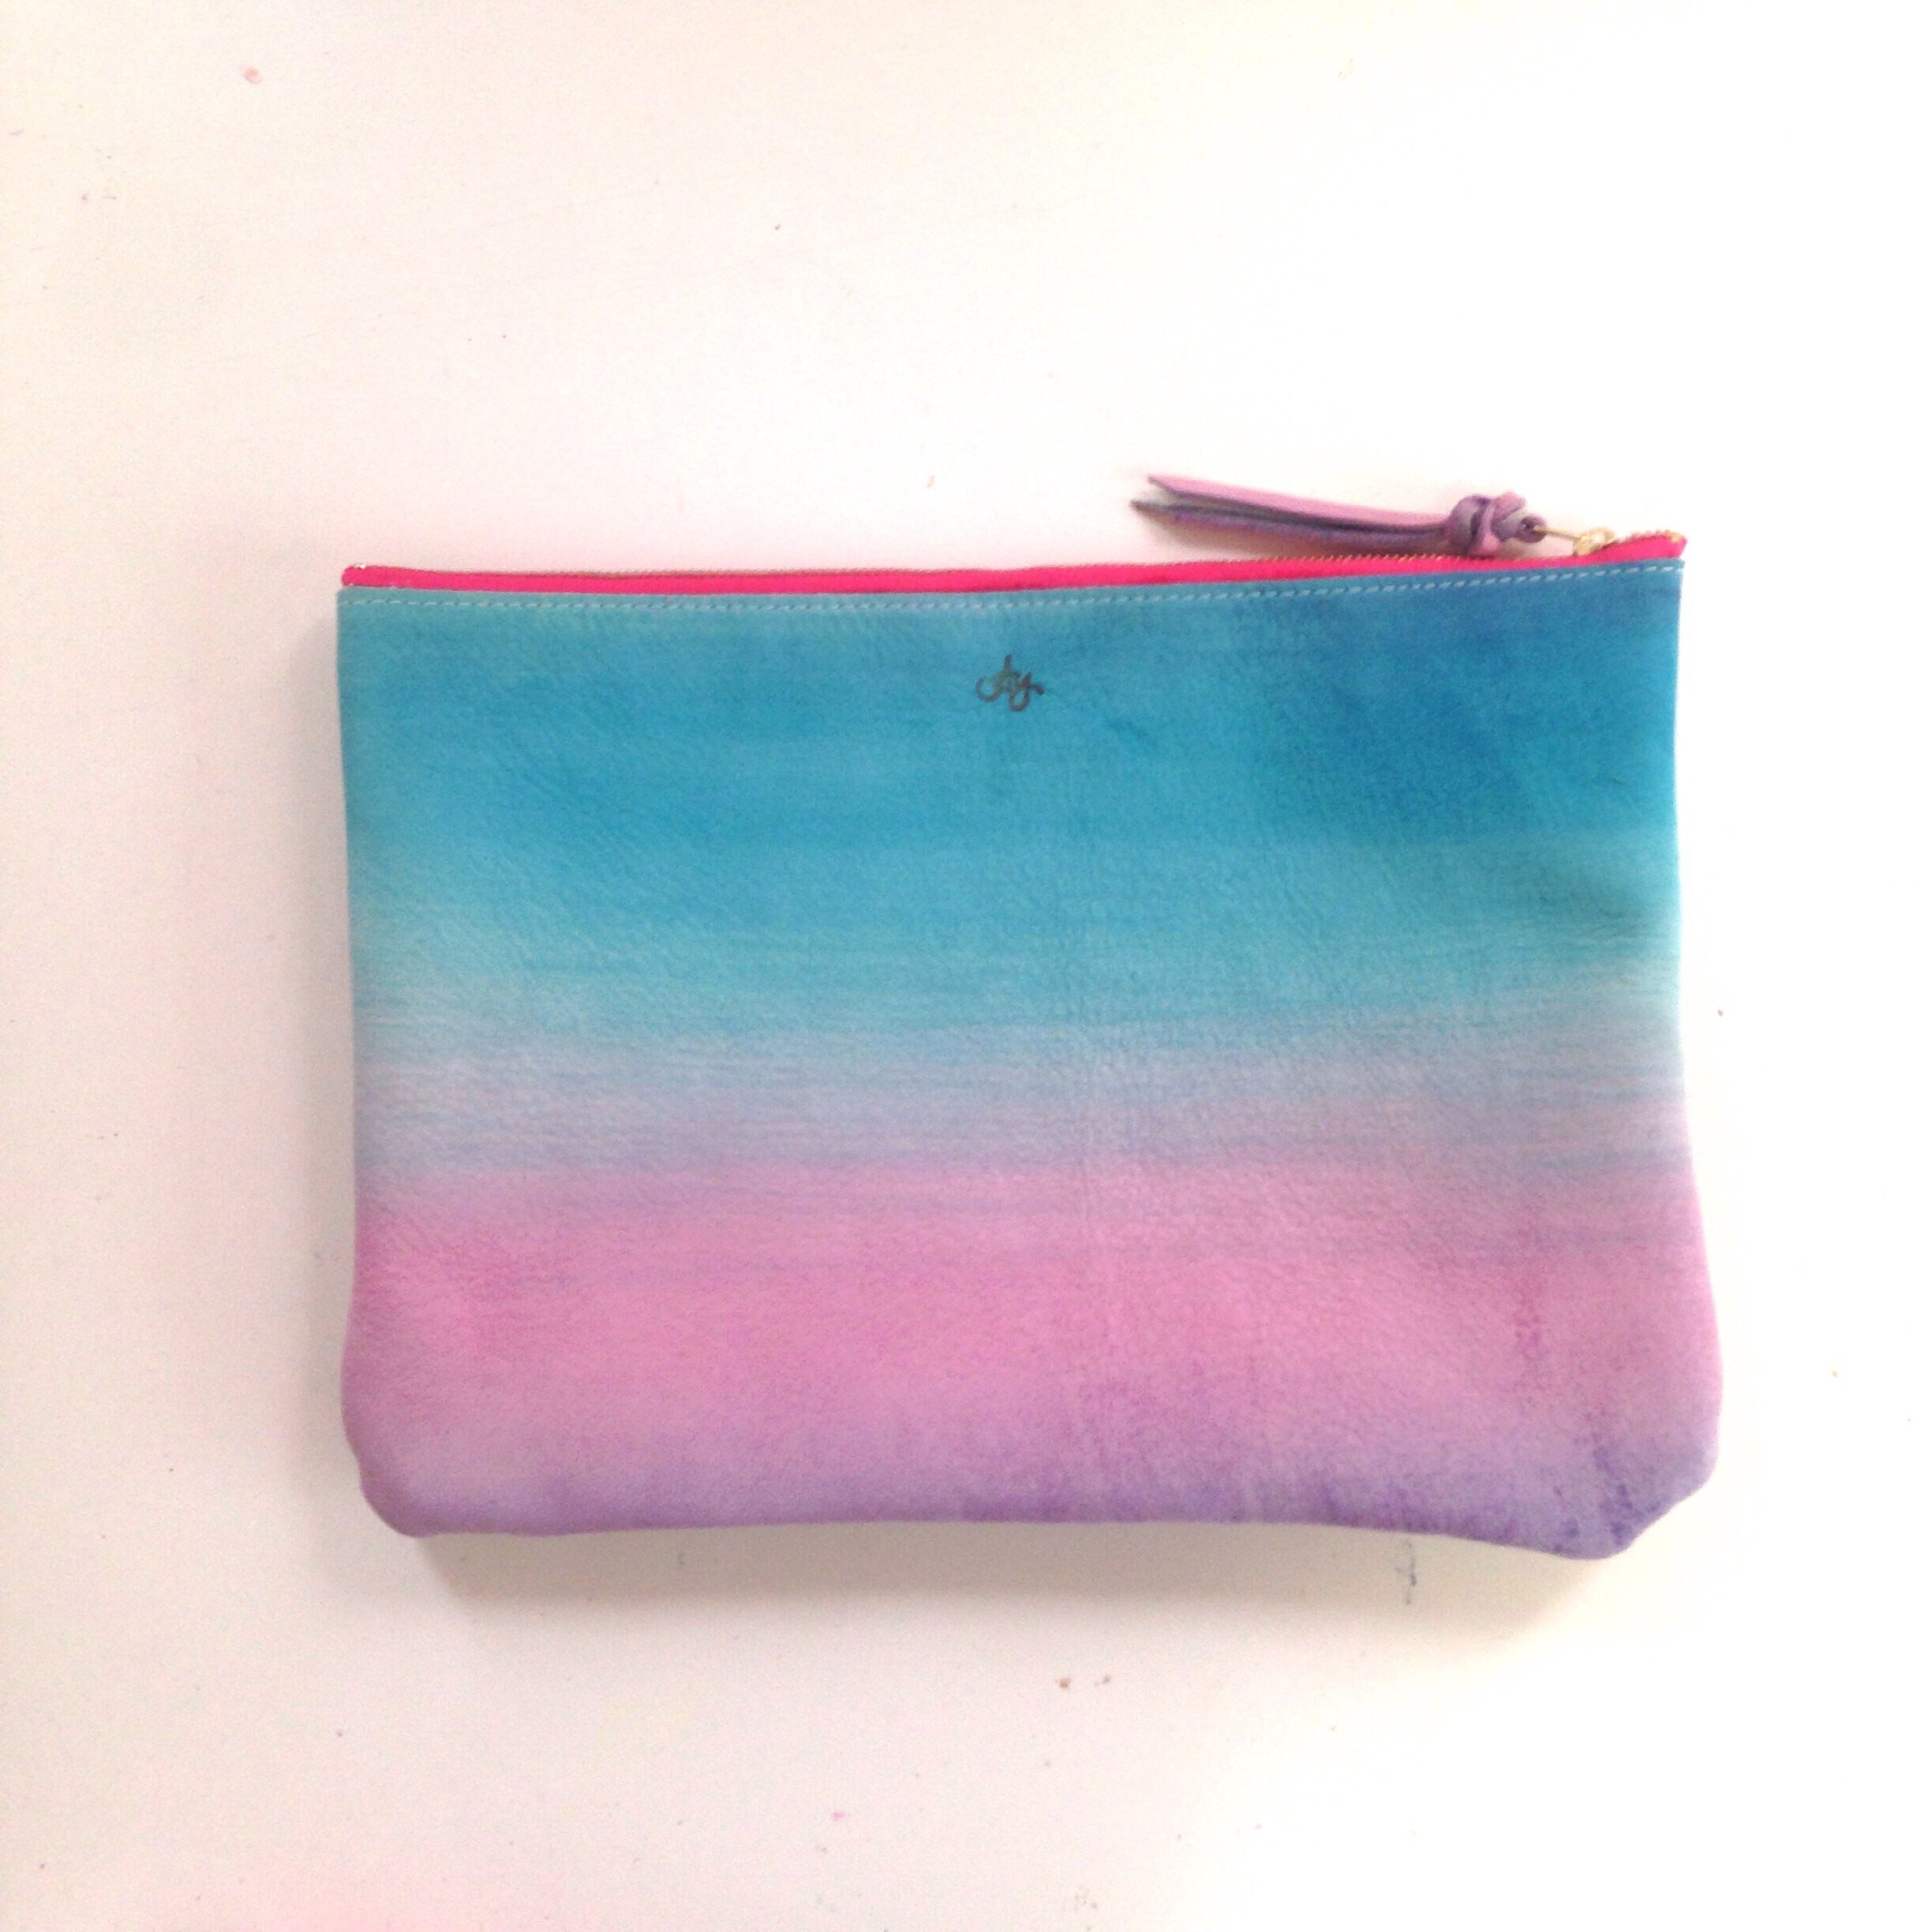 clutch bag -kauai is×bluegray